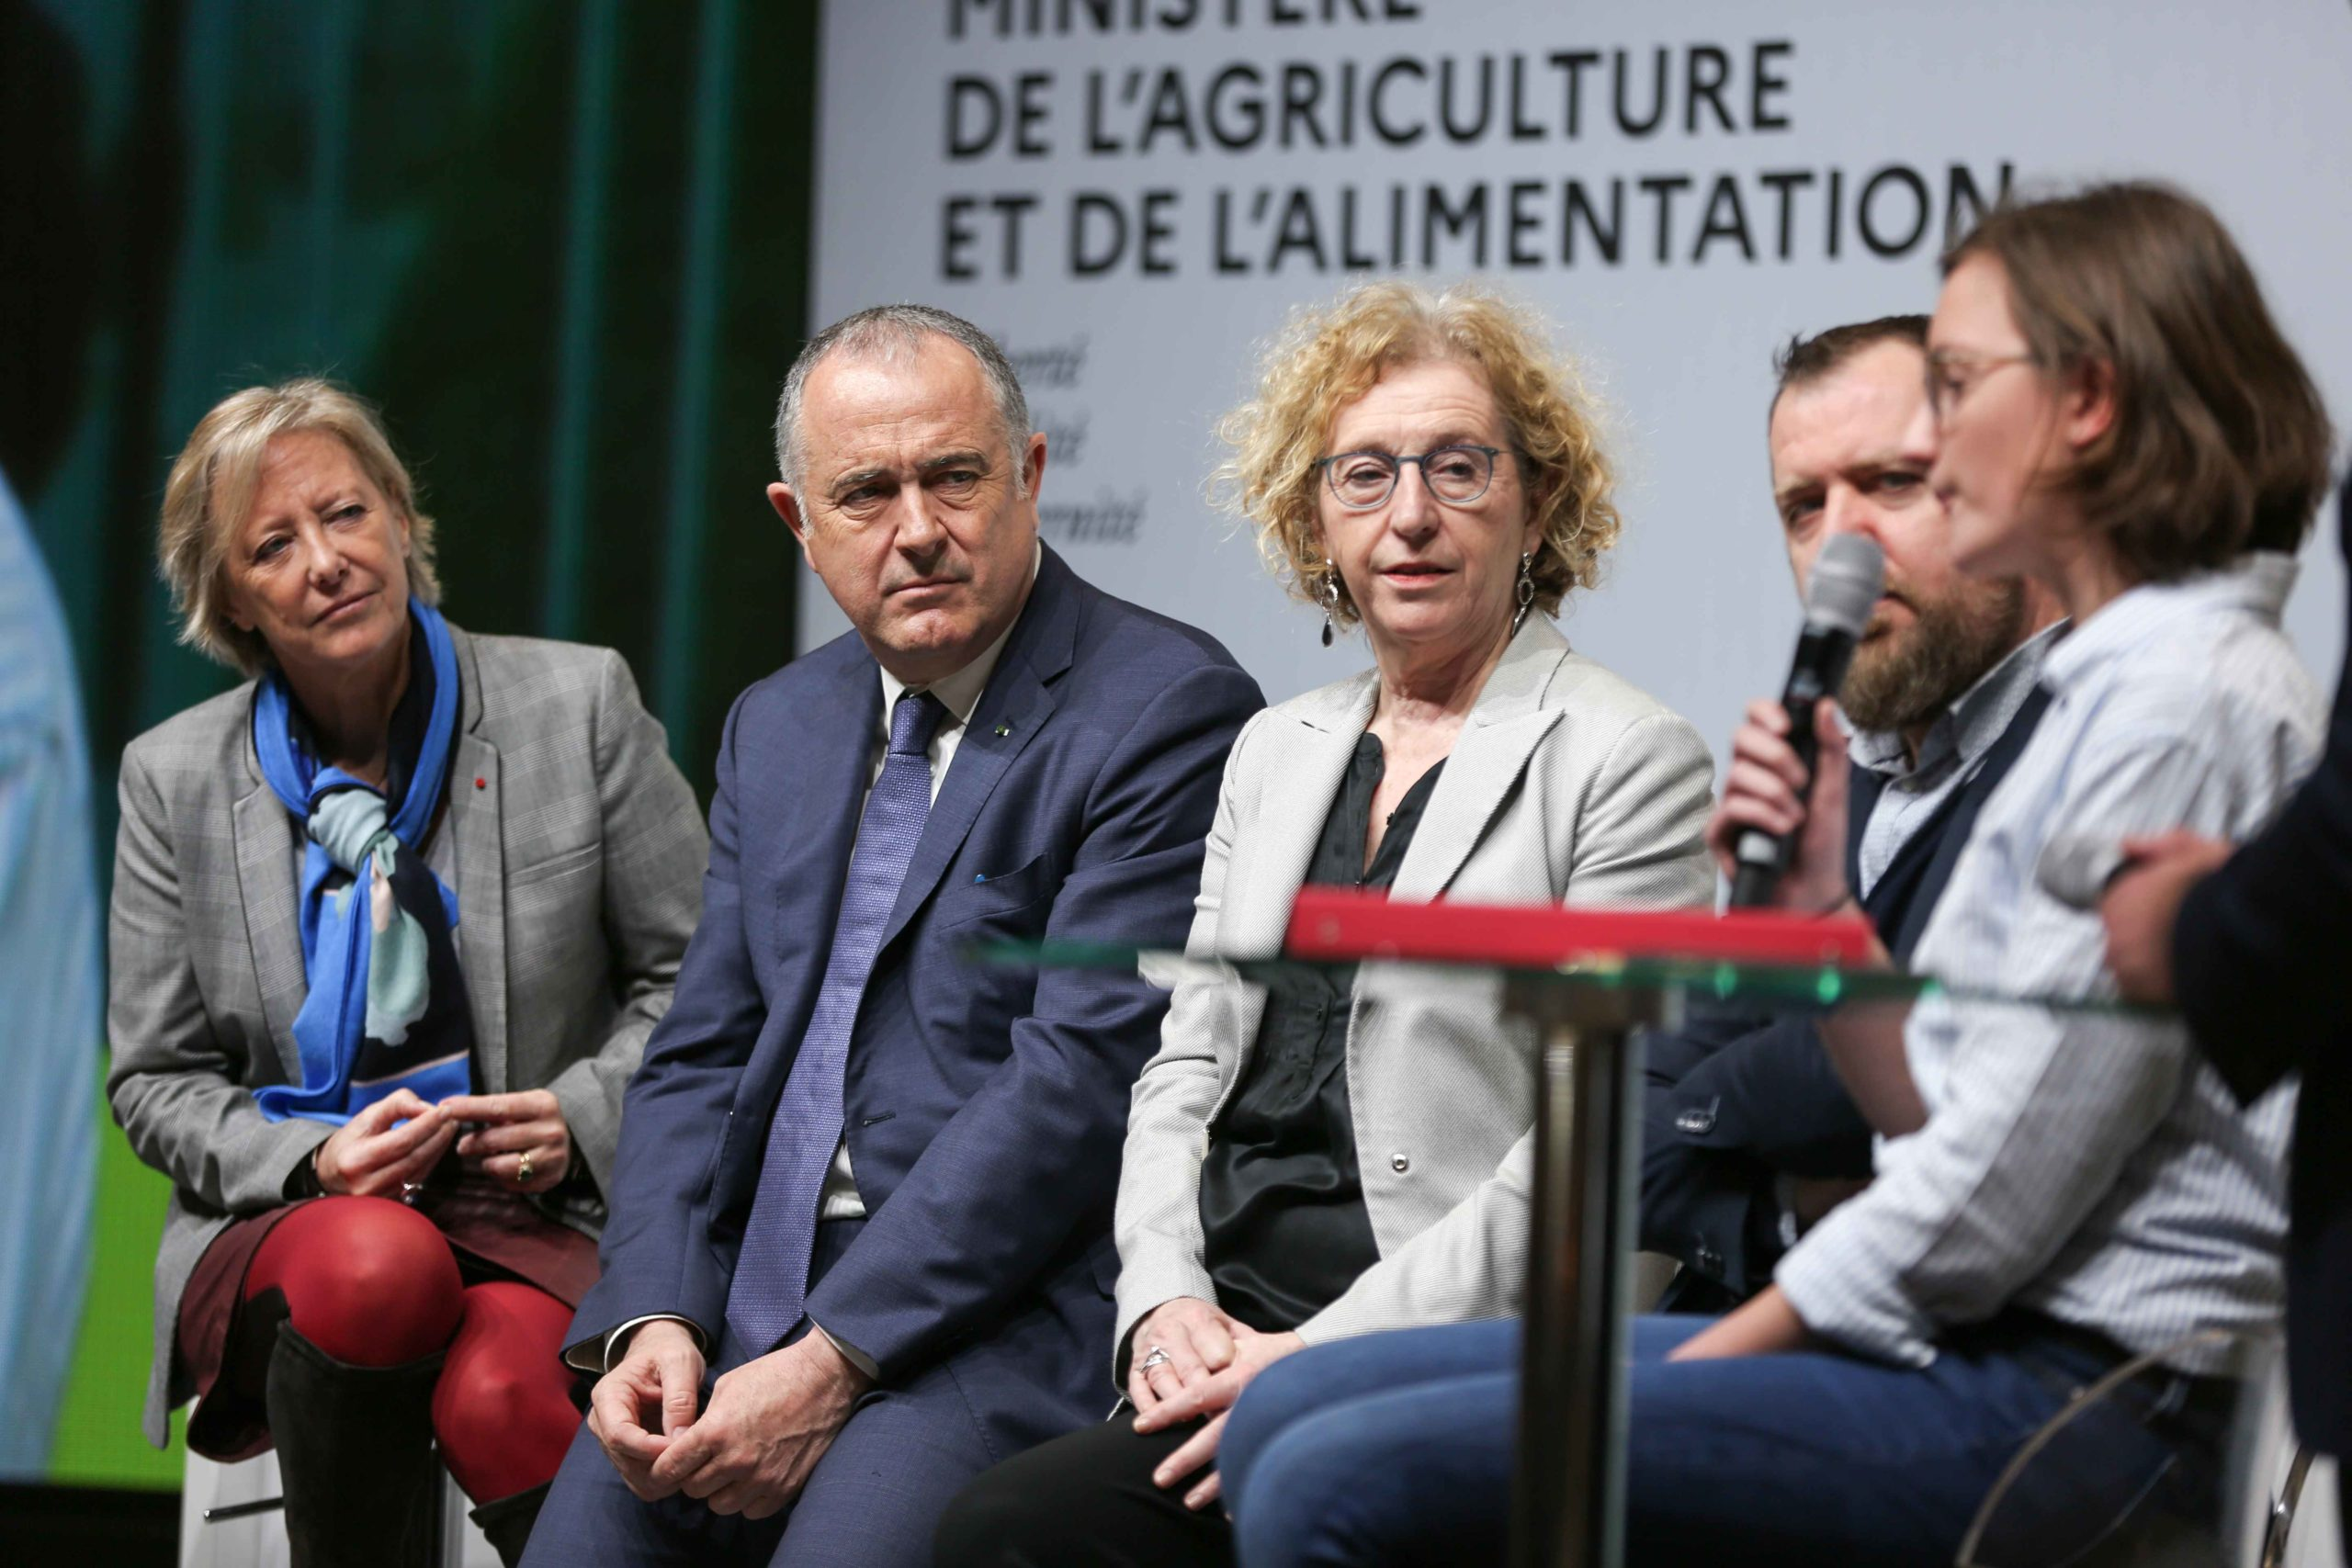 (L to R) French Junior Minister for Disability Issues Sophie Cluzel, Agriculture Minister Didier Guillaume and French Labour Minister Muriel Penicaud take part in a debate during the international Agriculture Fair in Paris on February 25, 2020.